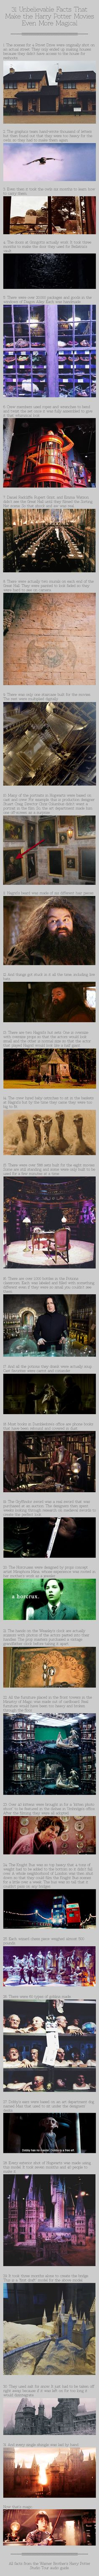 31 Unbelievable Facts That Make the Harry Potter Movies Even More Magical